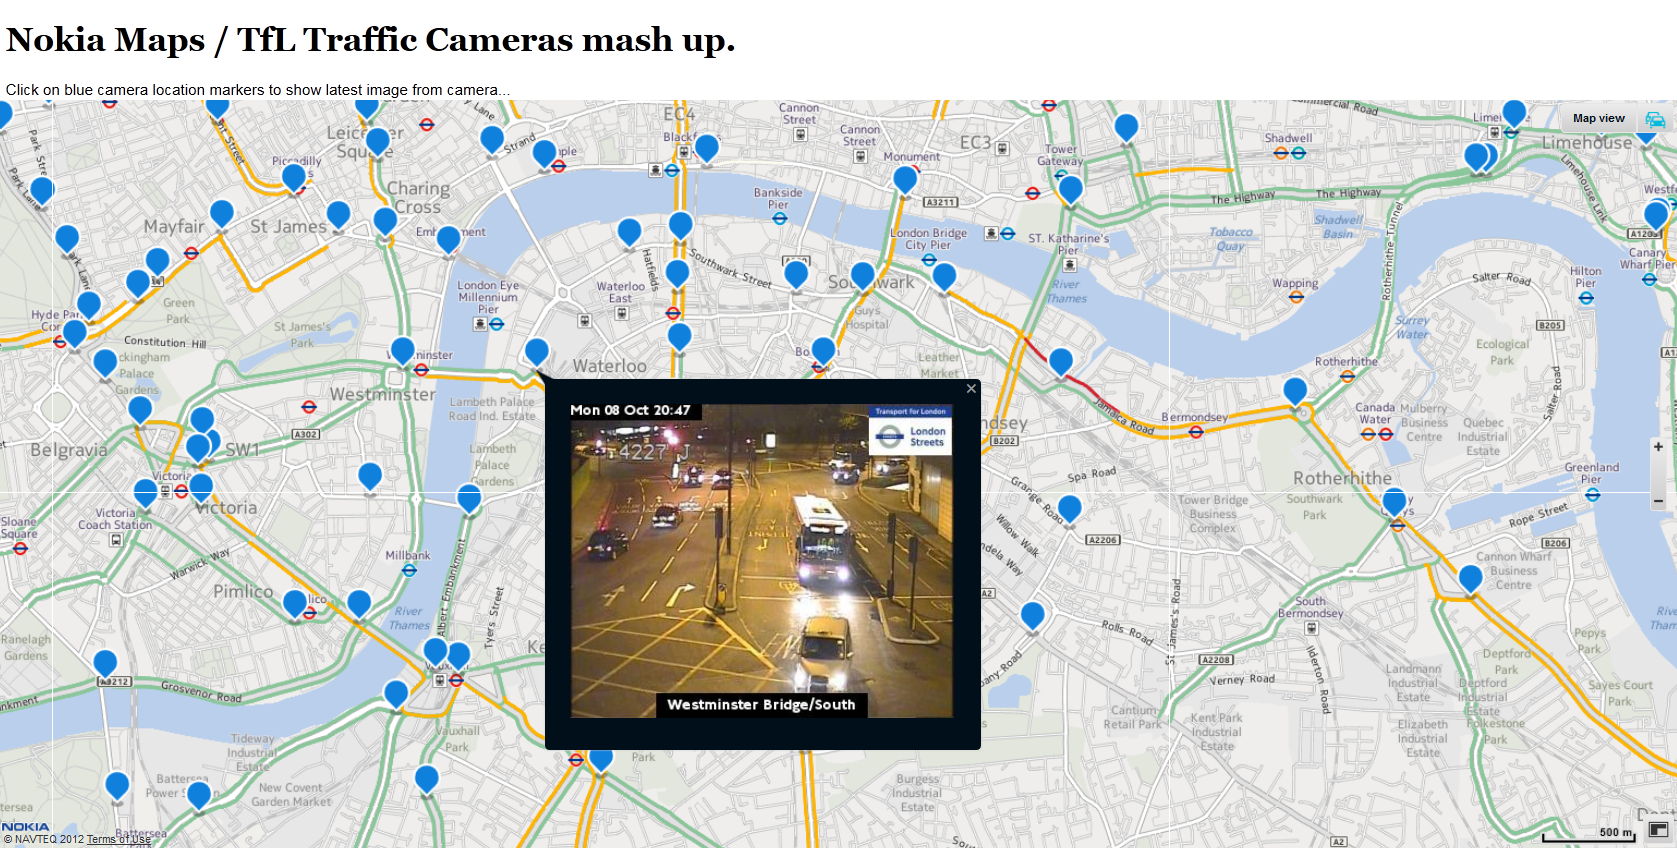 Nokia Maps / TfL Traffic Camera Mashup